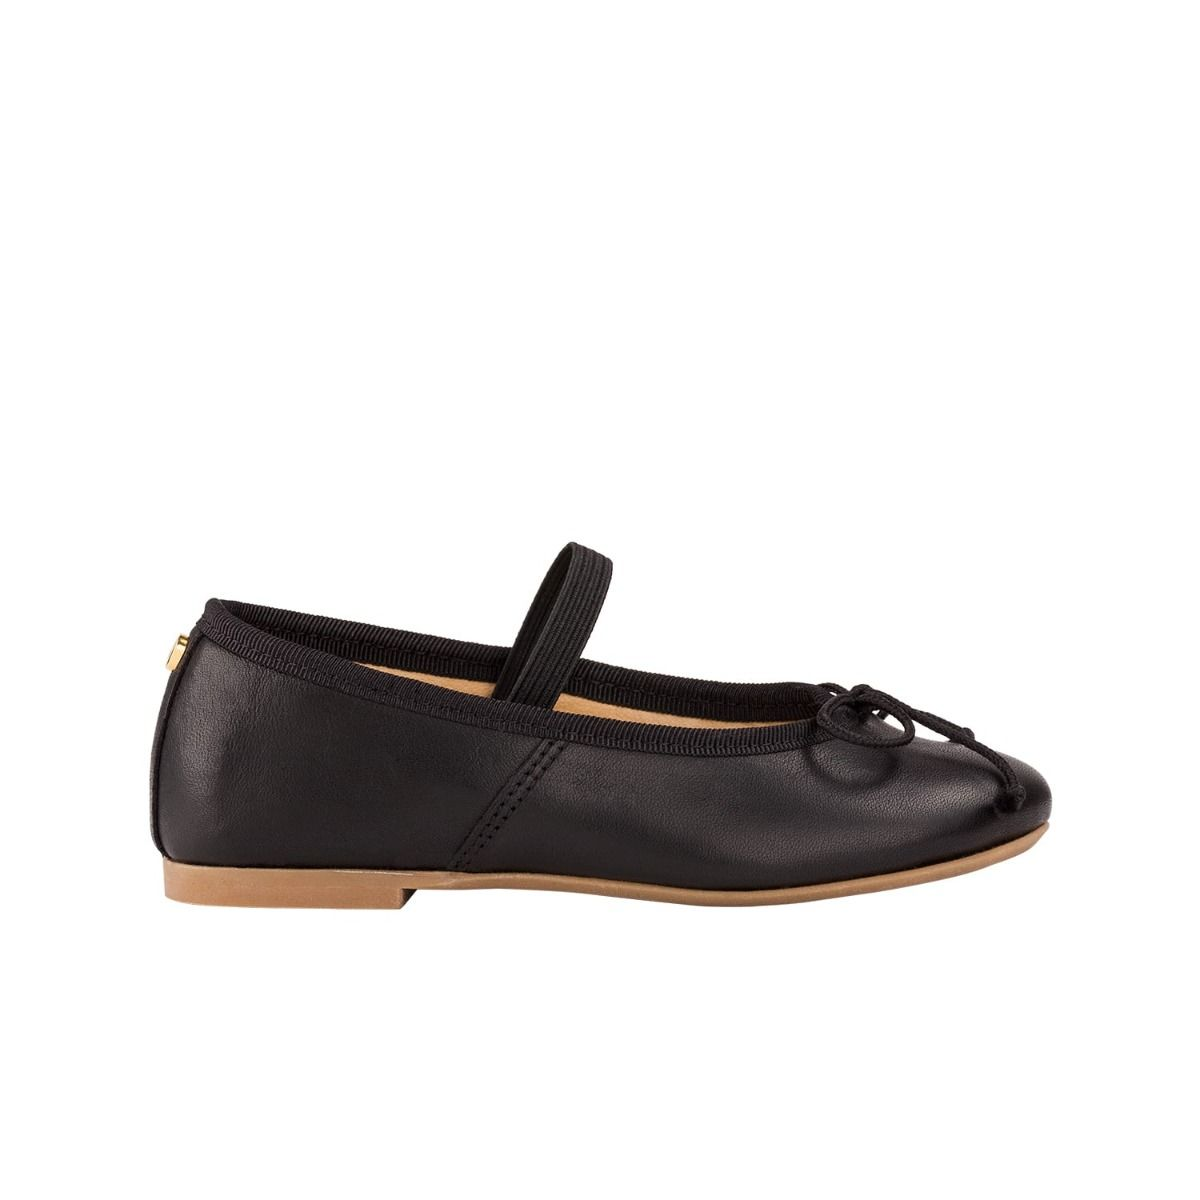 Toddler ballet flats in black leather with bow detail in cord.